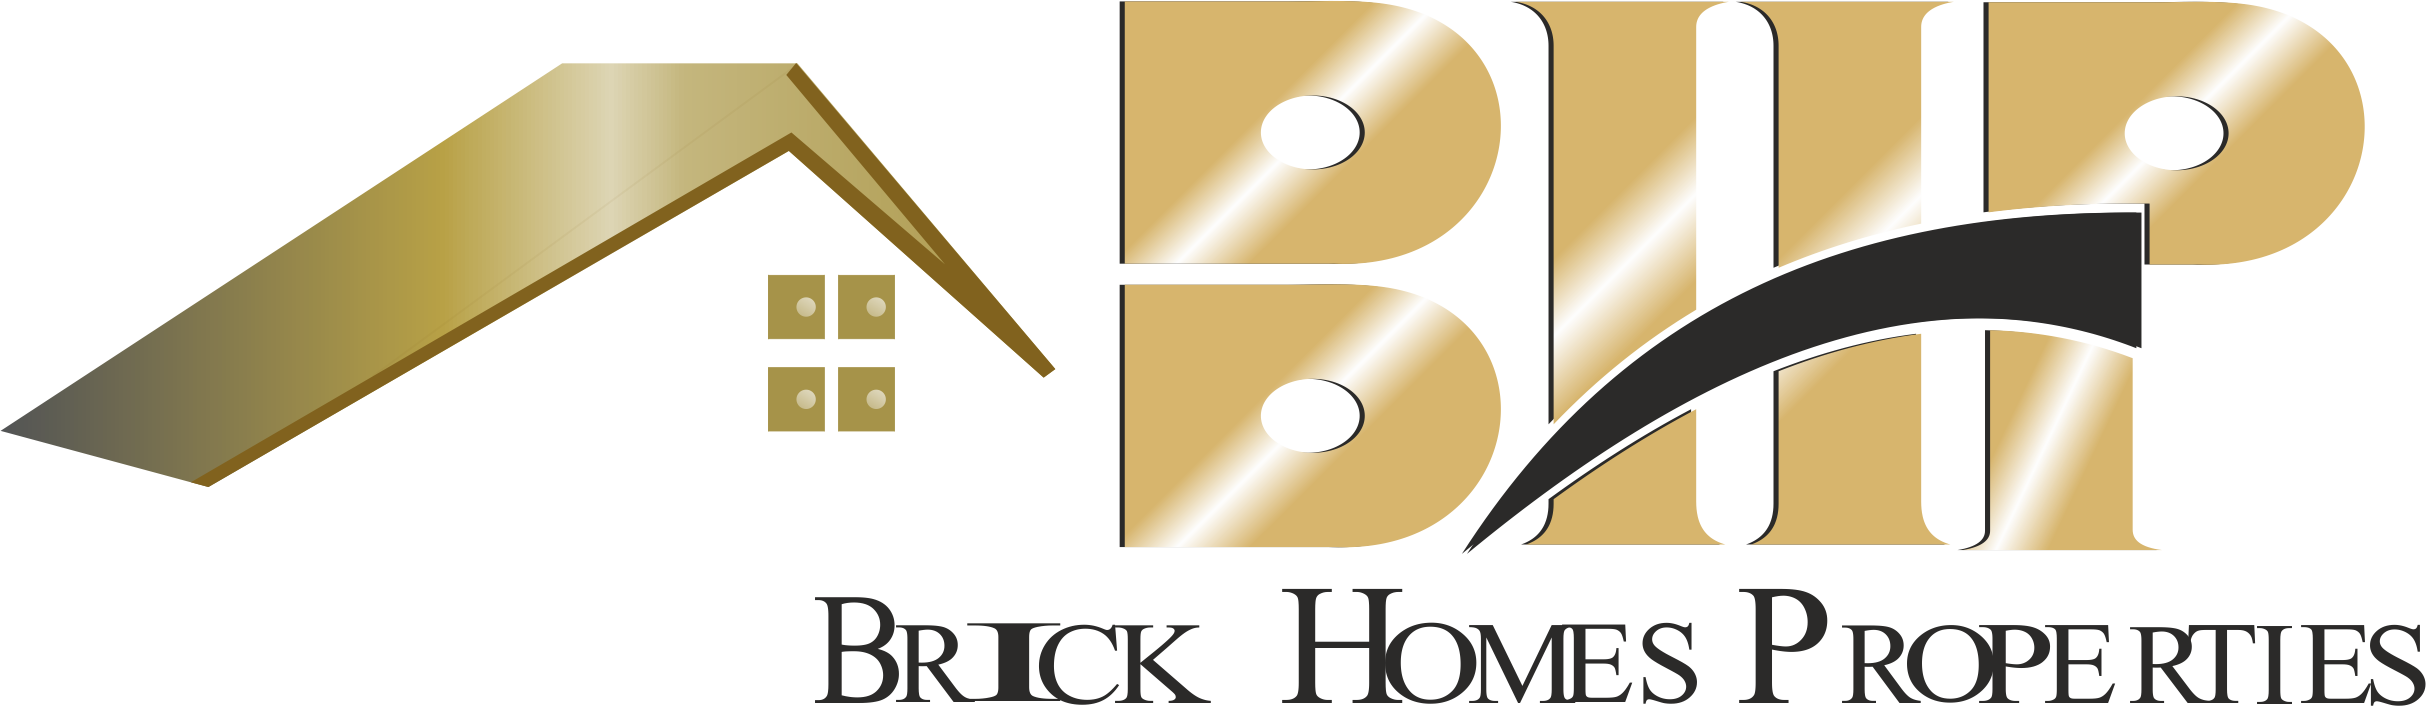 Brick Homes Properties